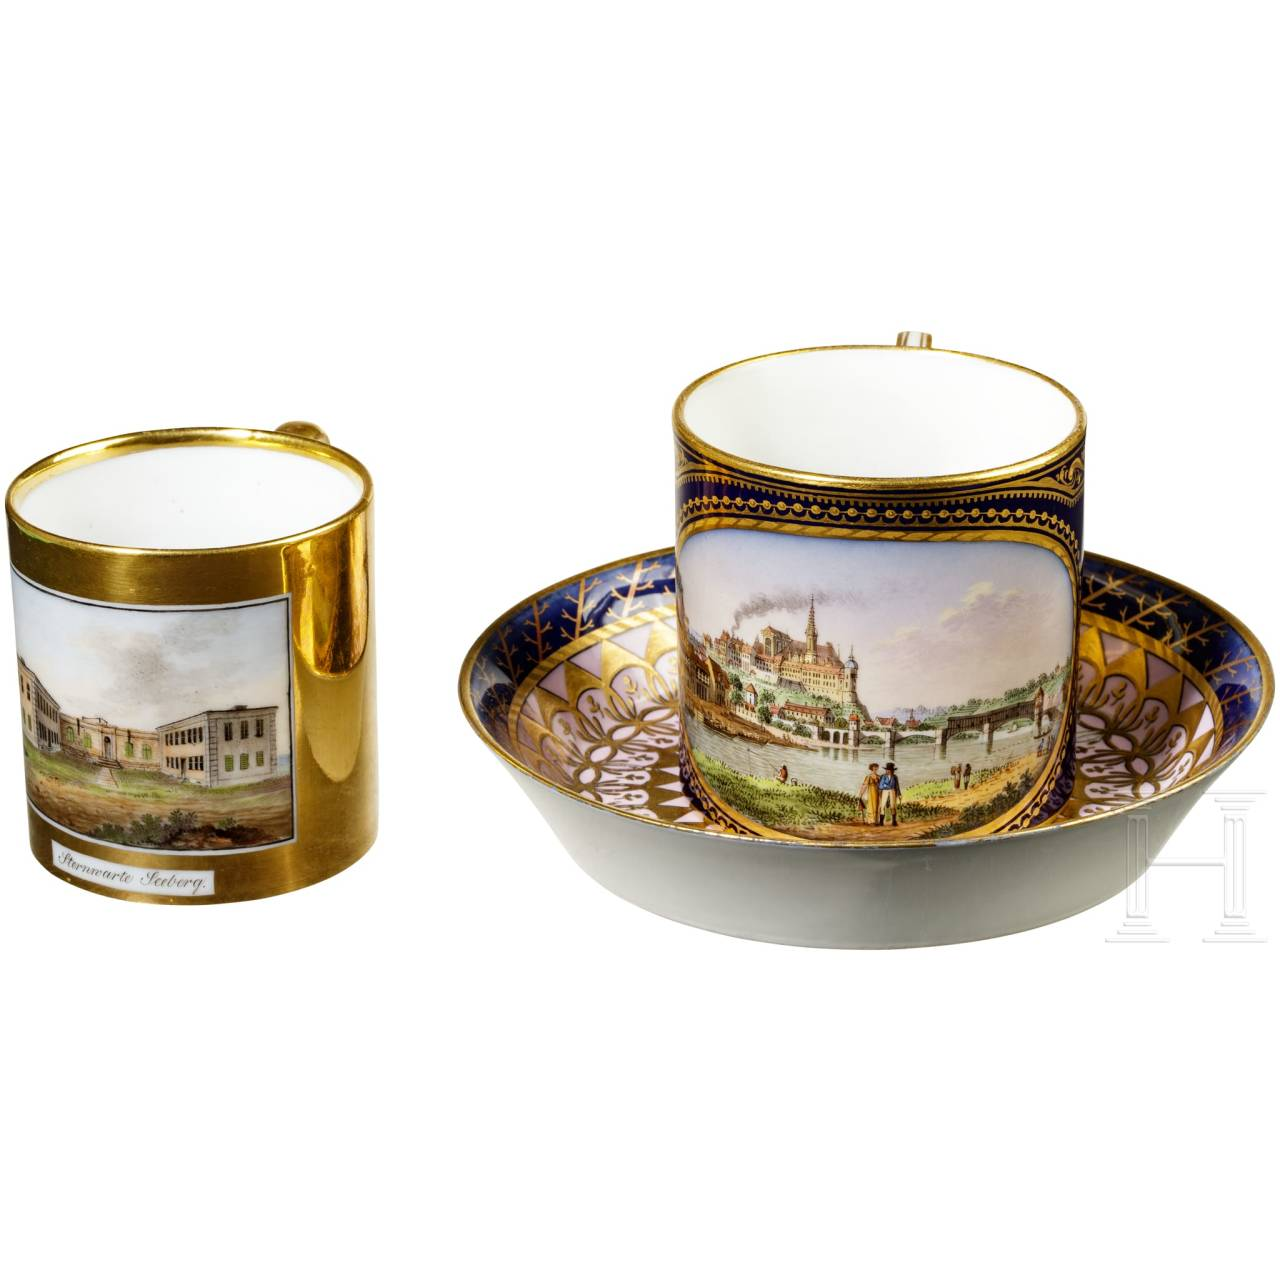 Two cups, Meissen and Gotha, 1st half of the 19th century